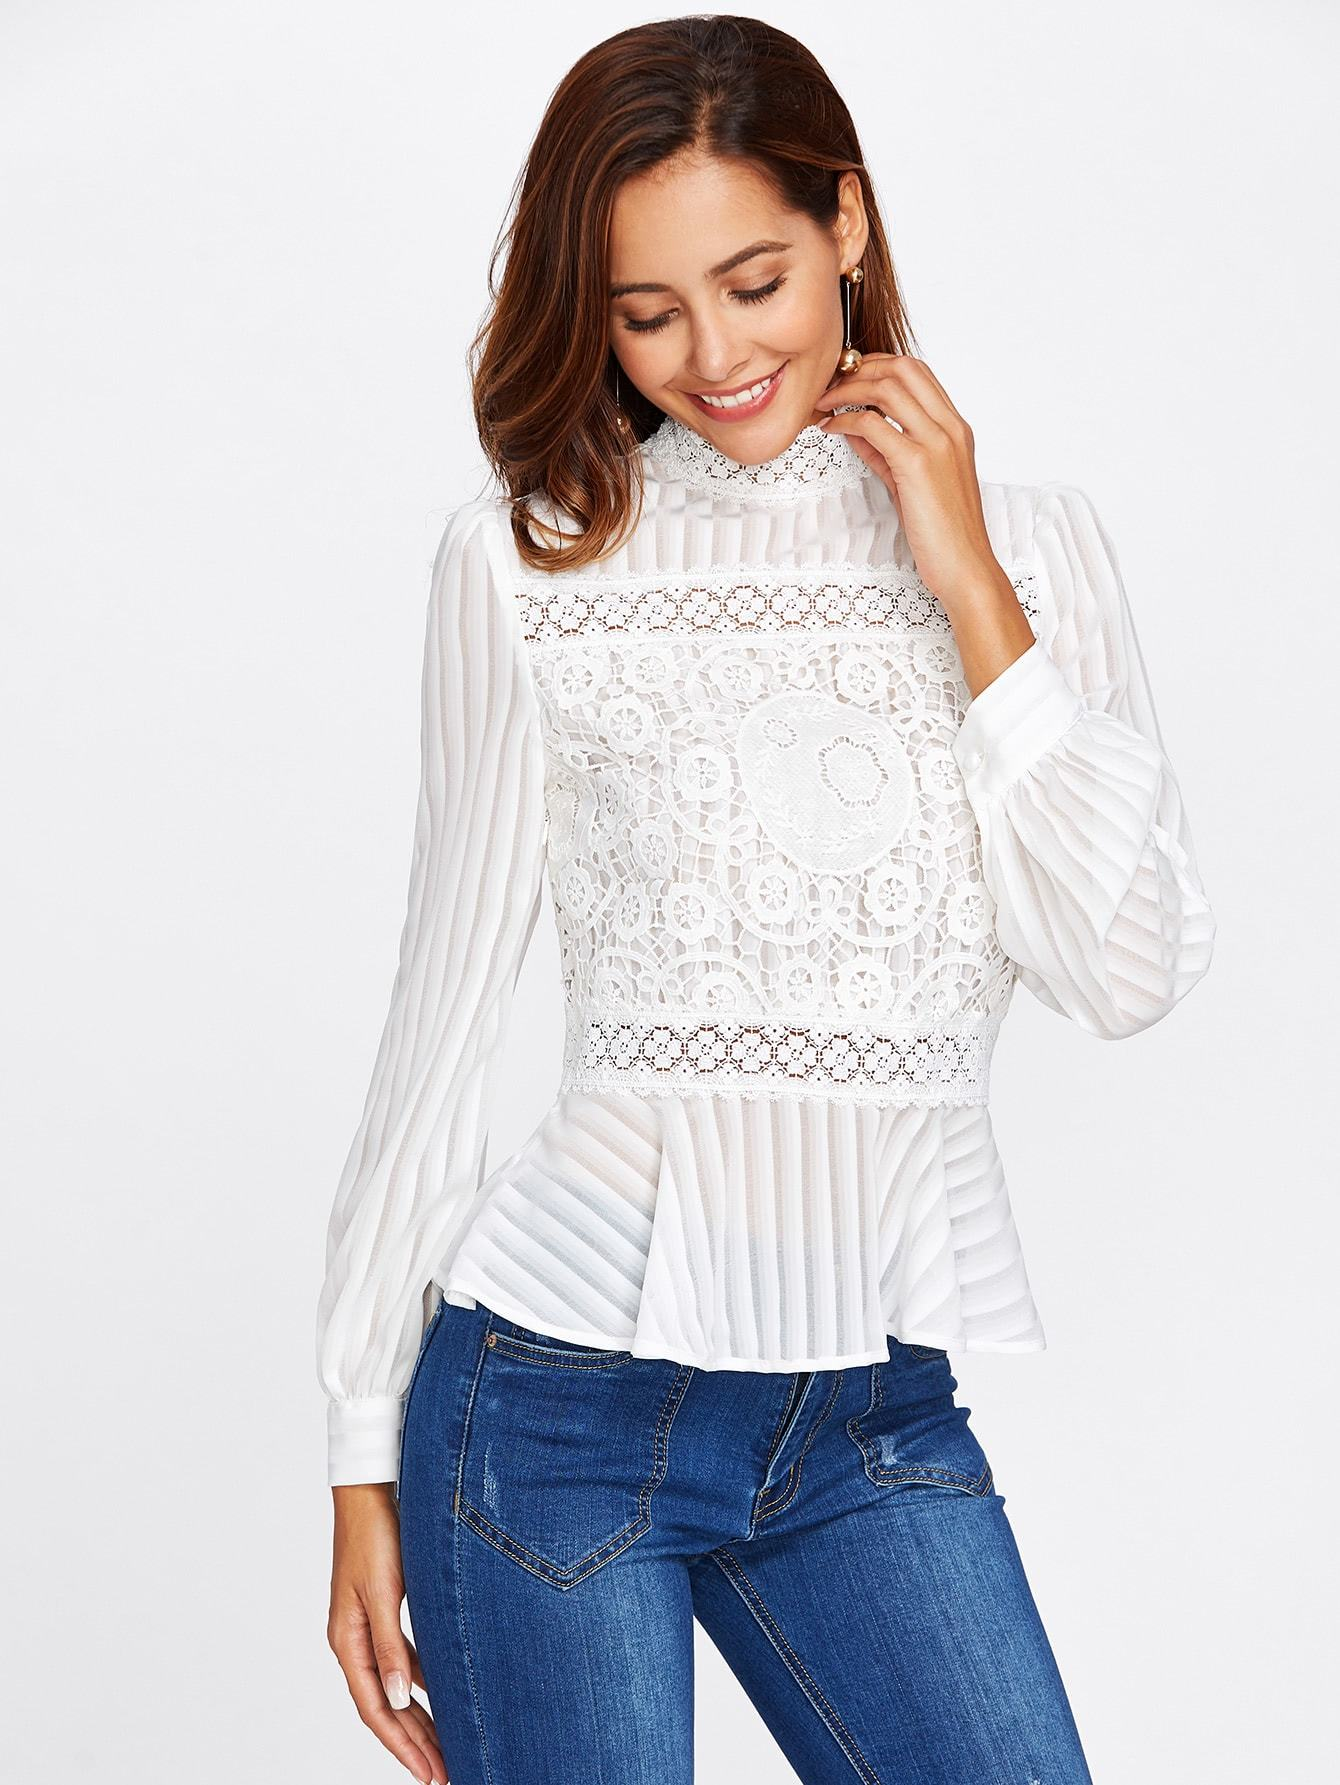 Lace Peplum Blouse - LoveSylvester